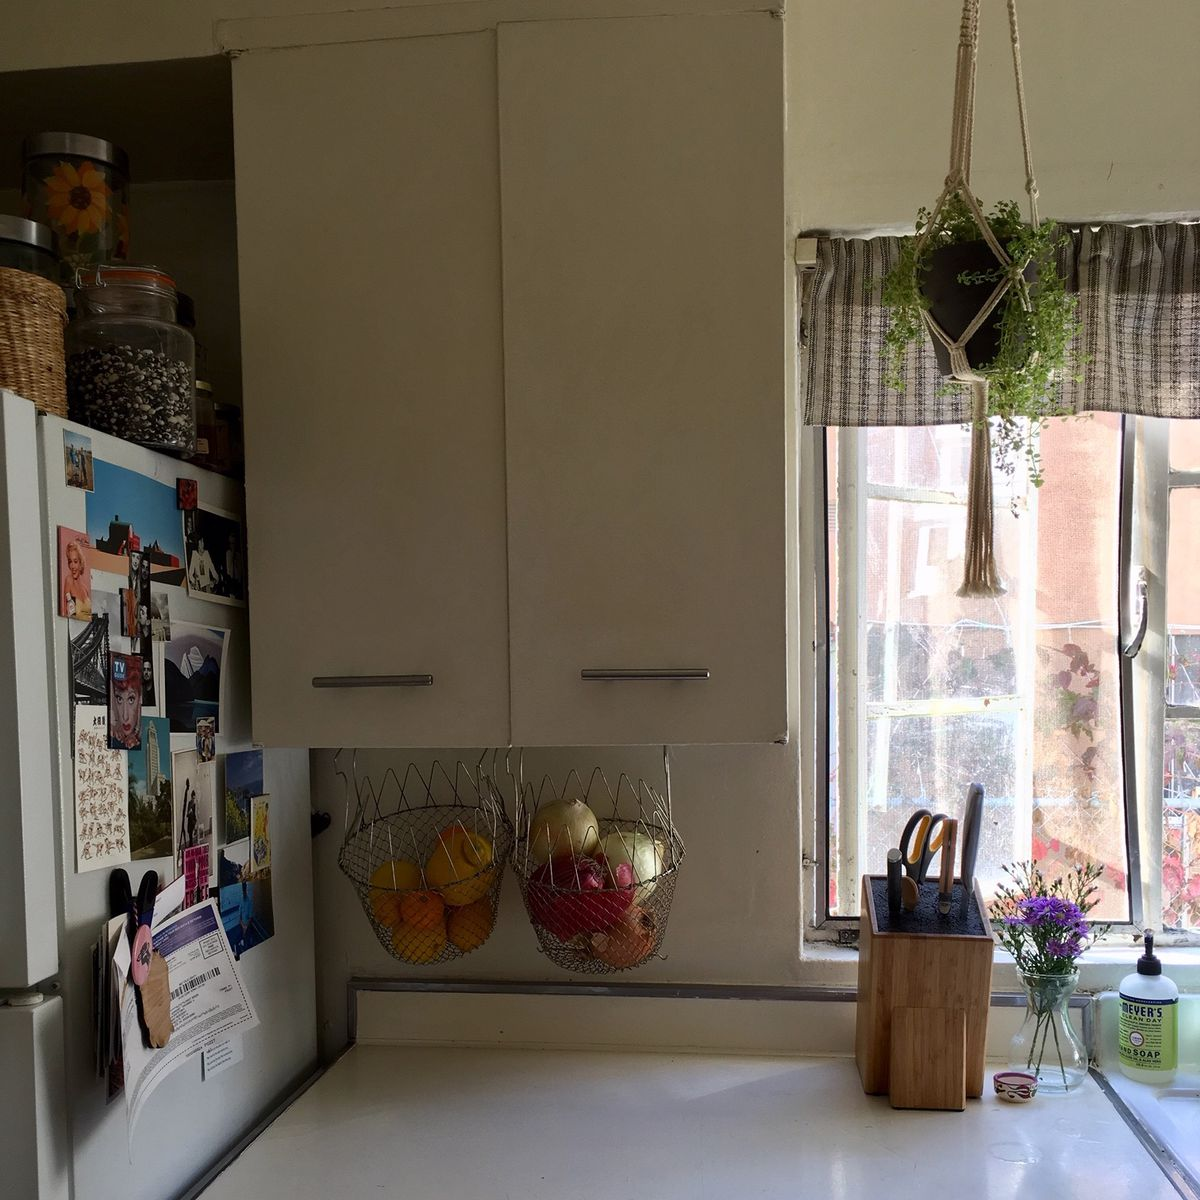 Kitchen with two metal baskets hanging from the underside of cabinets.